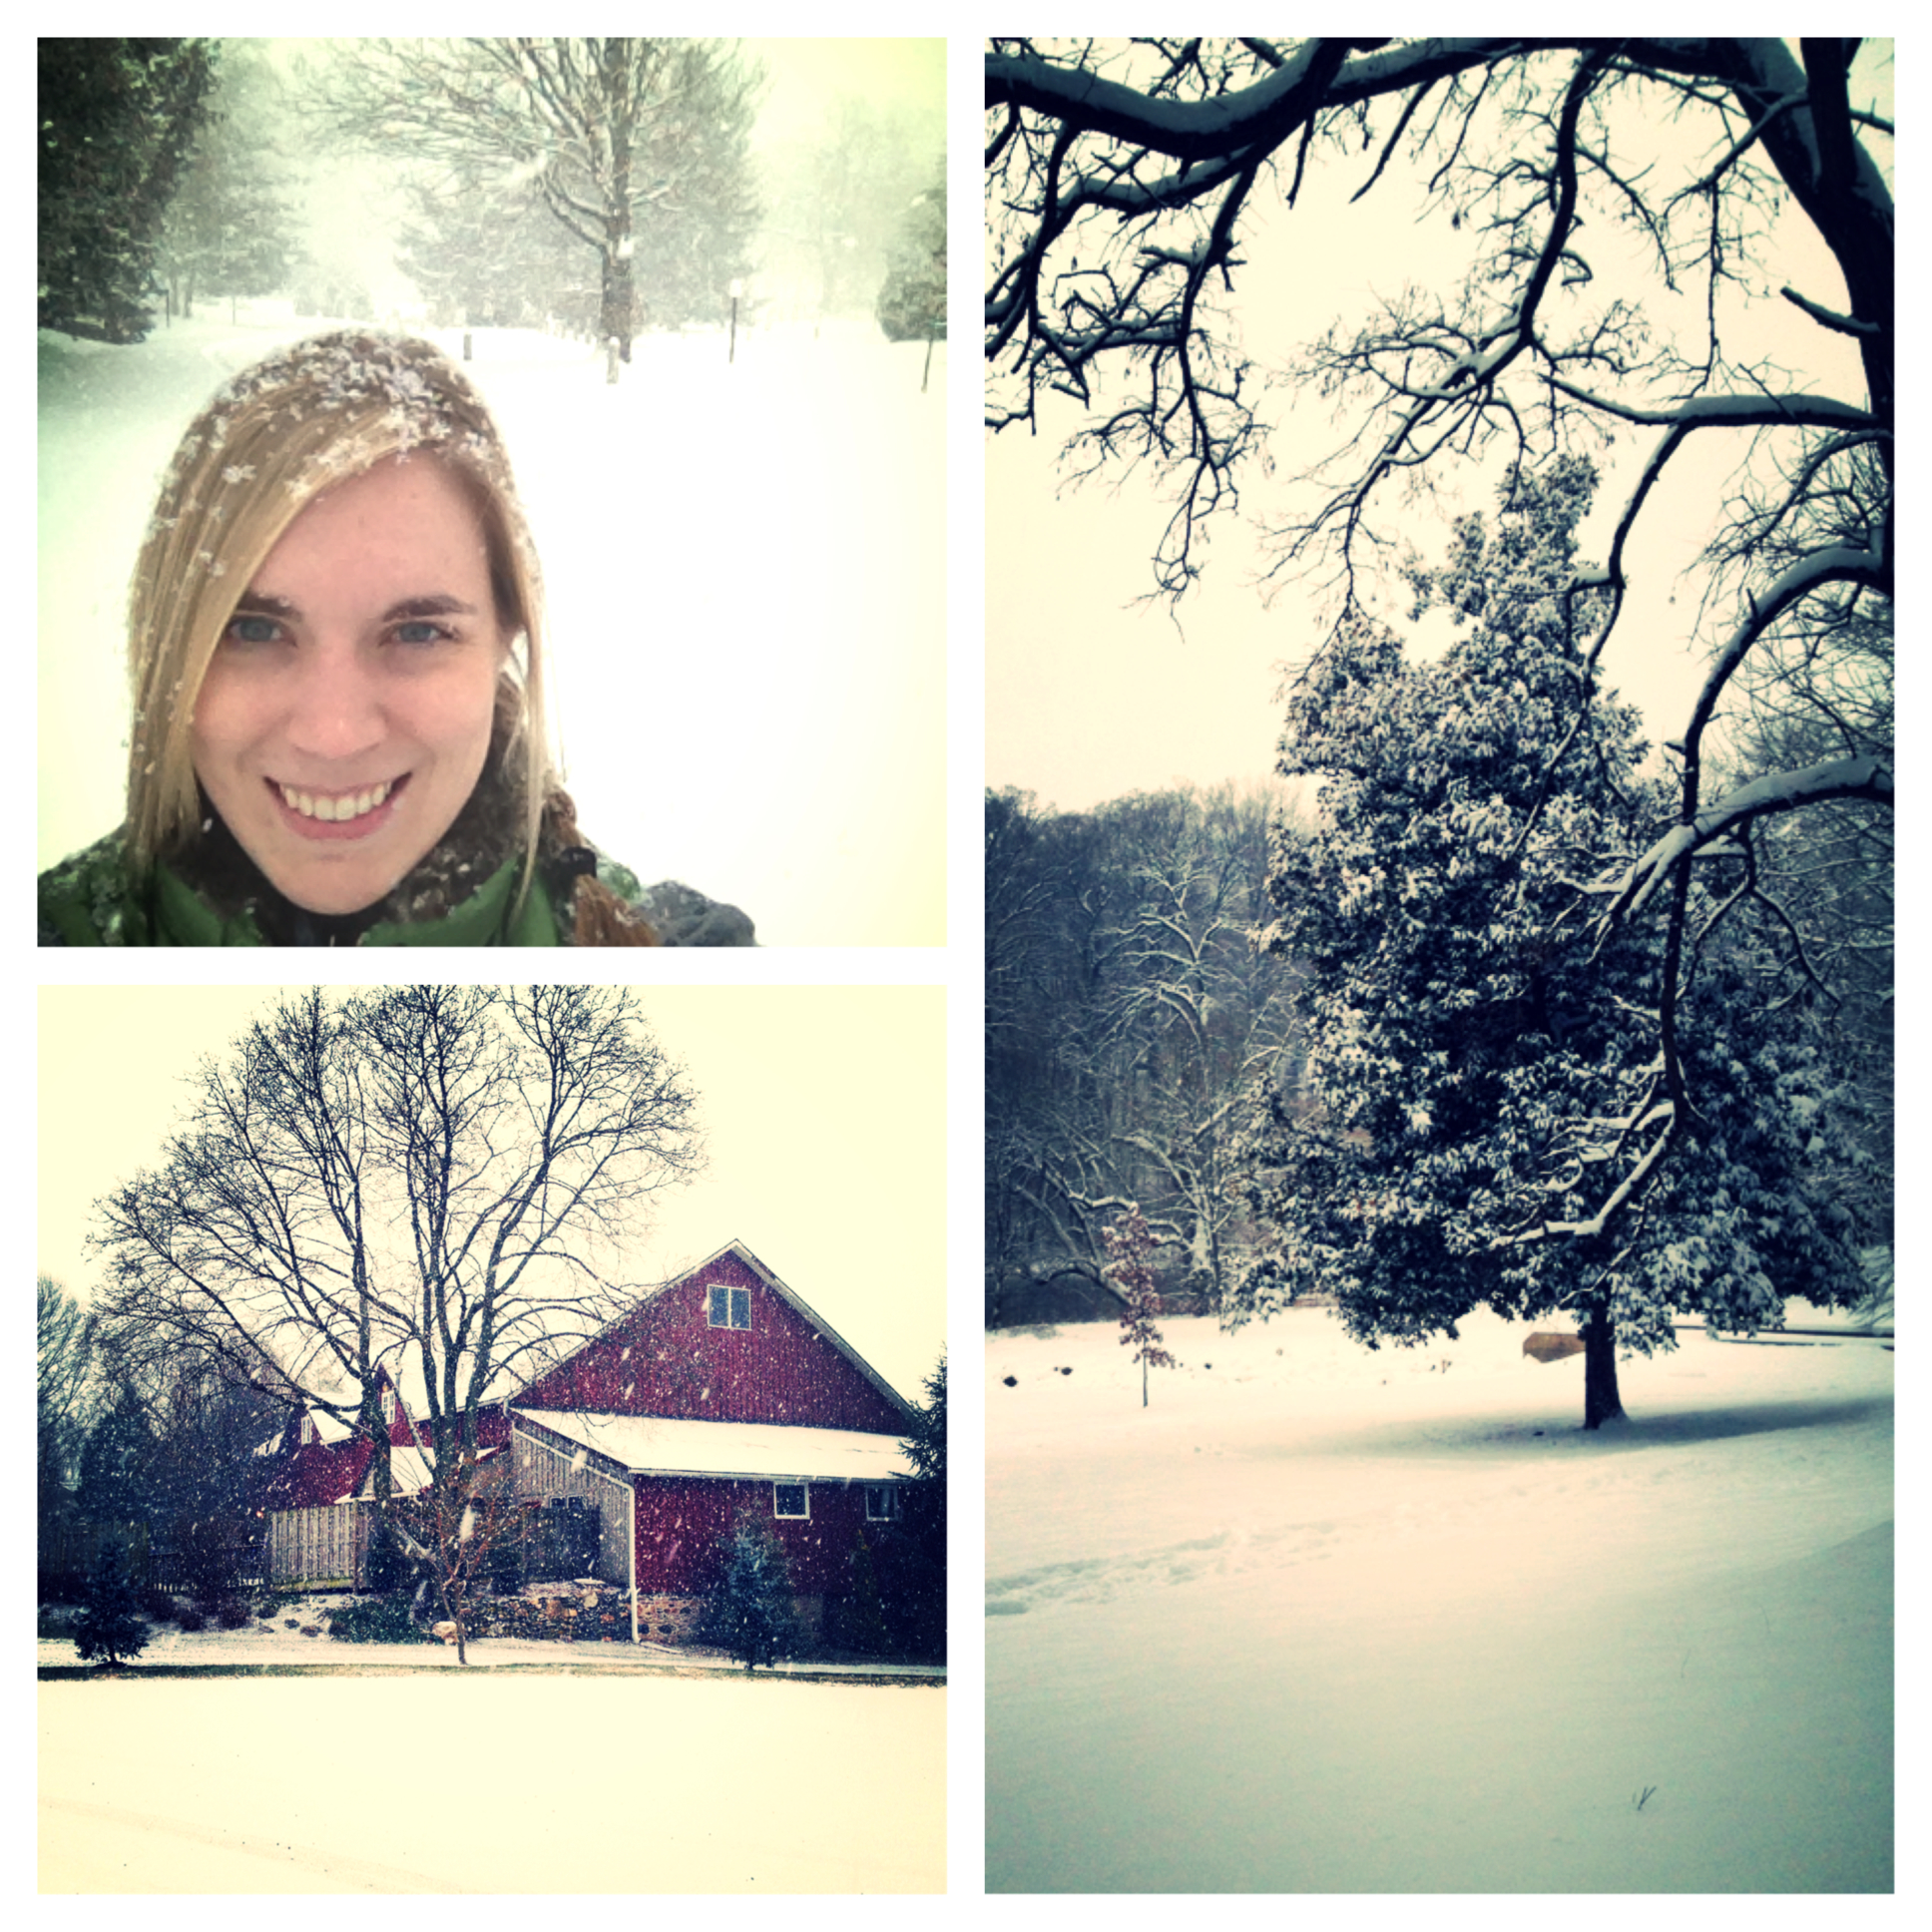 My snow day, views from winery (bottom left) and the park near my house!